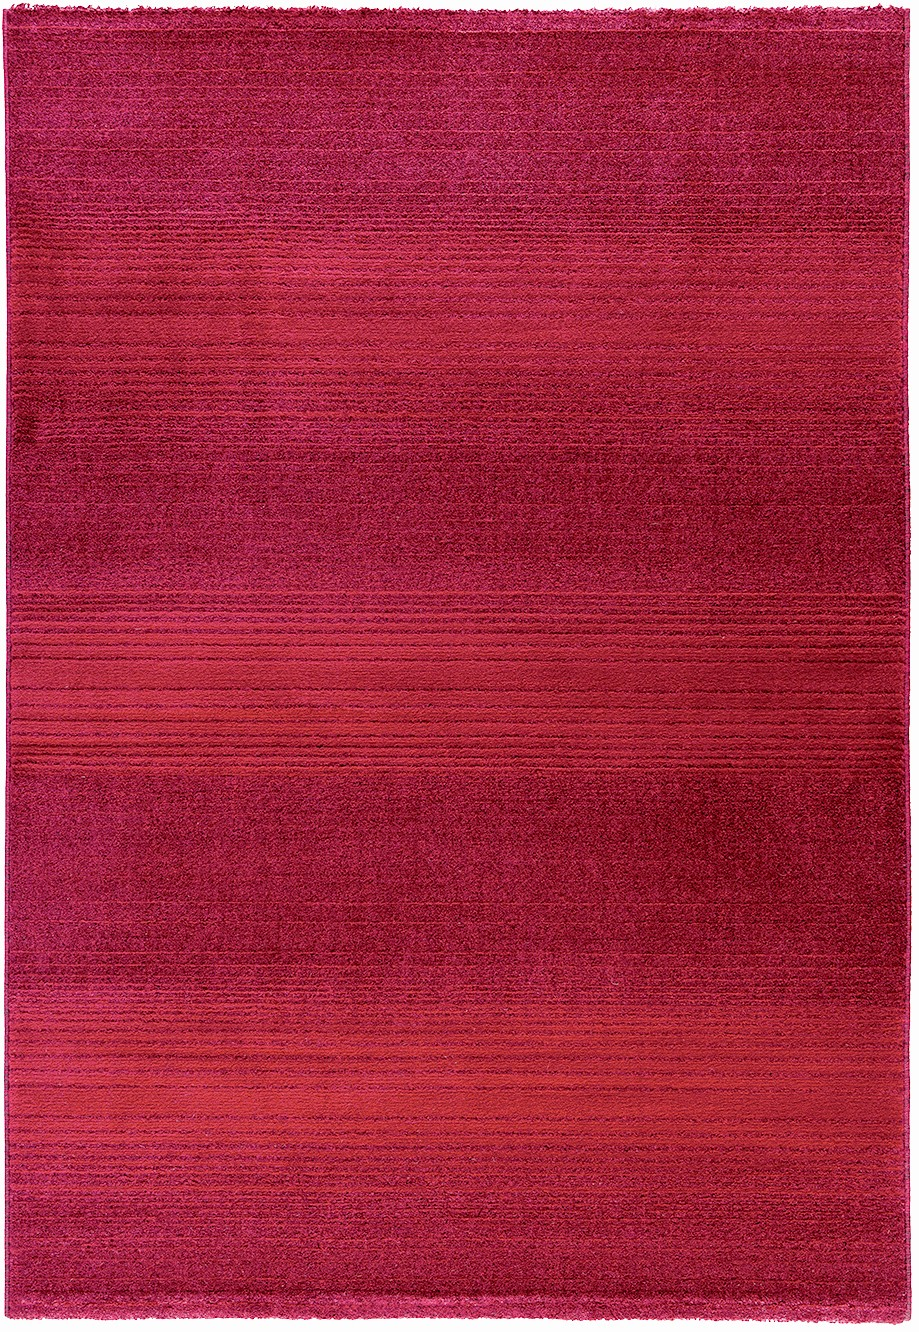 tapis salon rouge tapis de salon moderne grand tapis de salon tapis de - Tapis De Salon Rouge